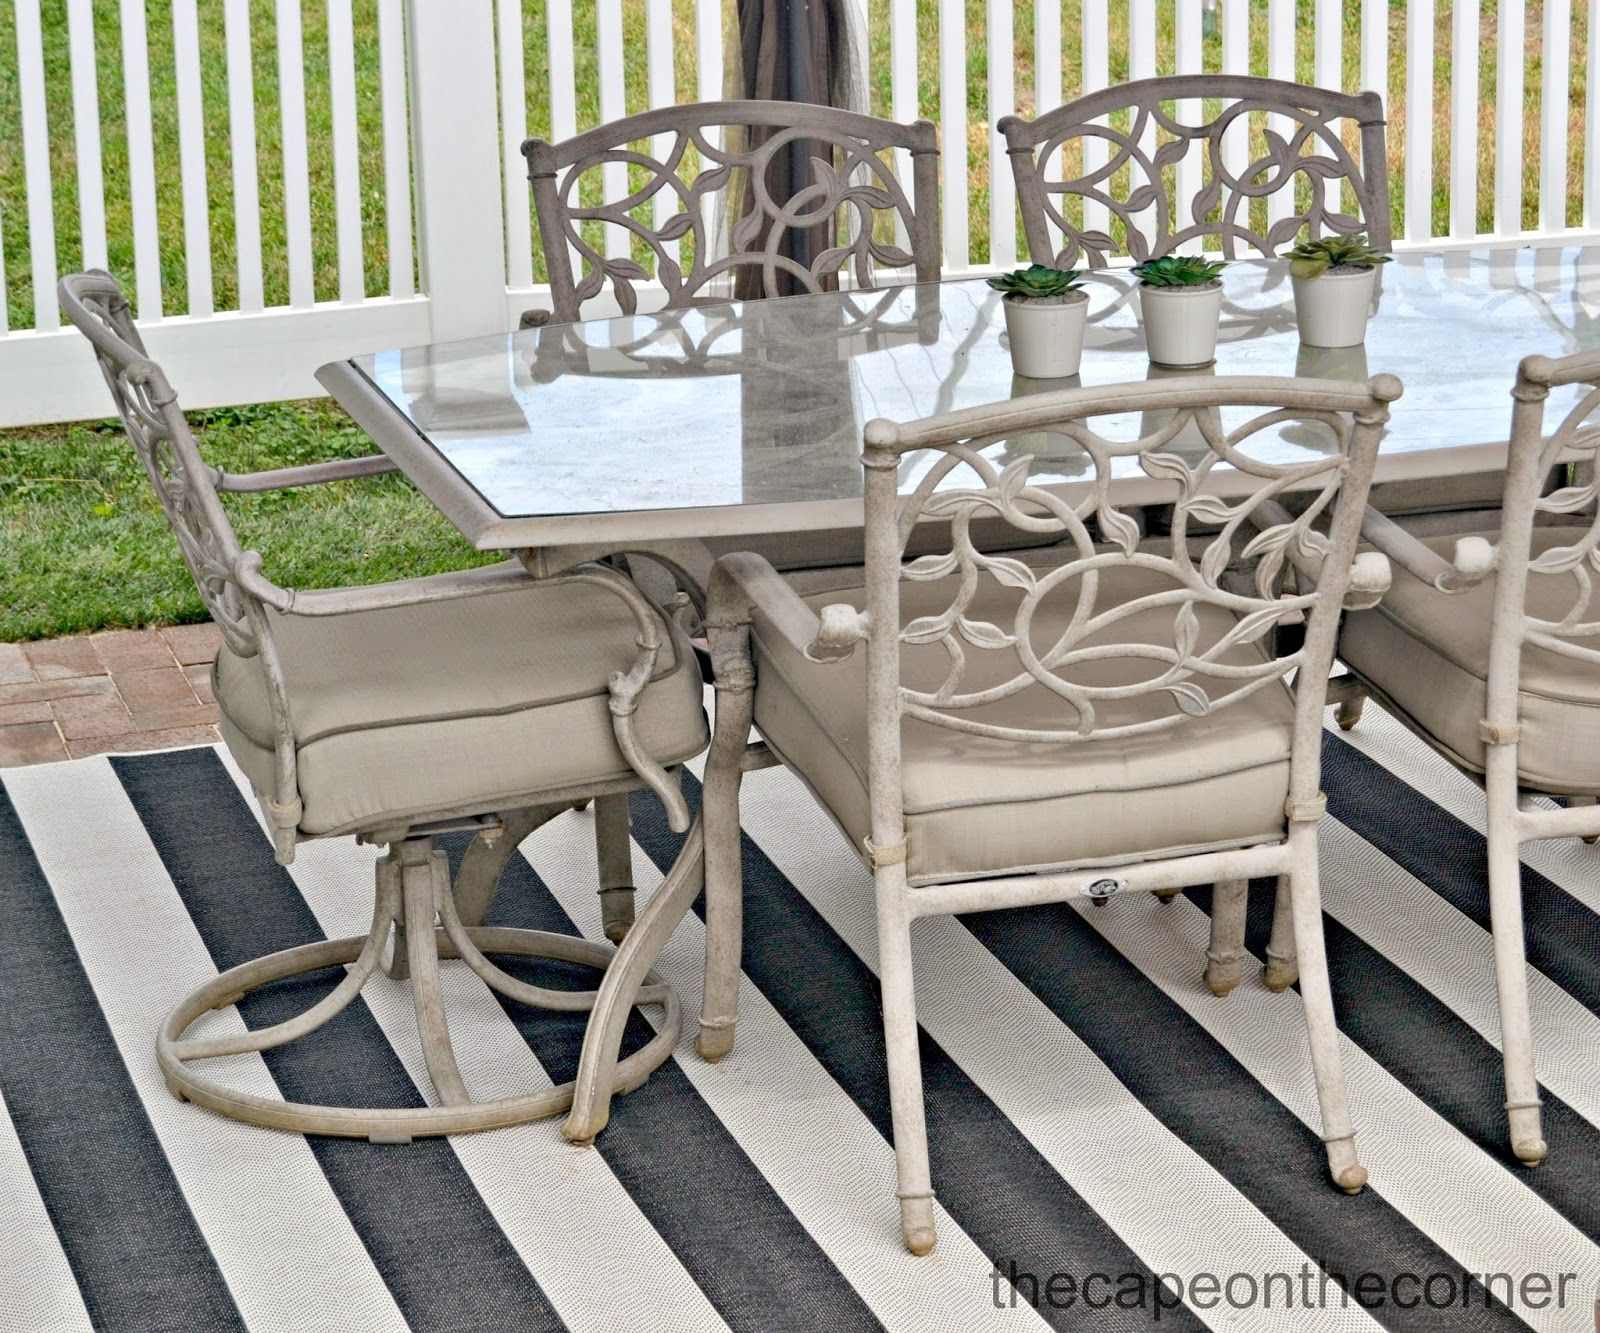 Stylish Hampton Bay Outdoor Furniture For Your Patio And Garden